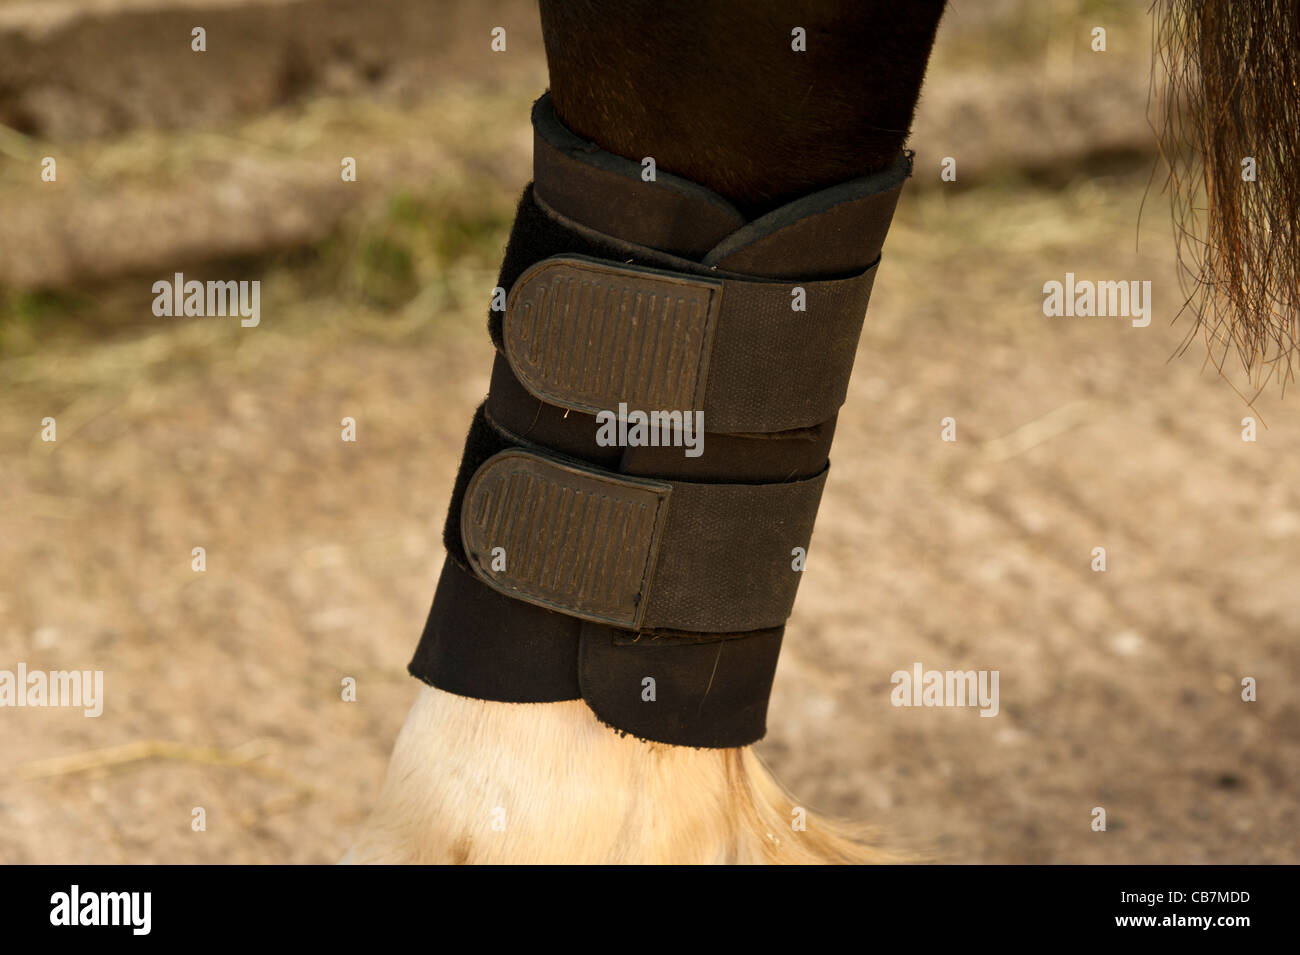 detail of leg wrap on a horse.landscape format - Stock Image